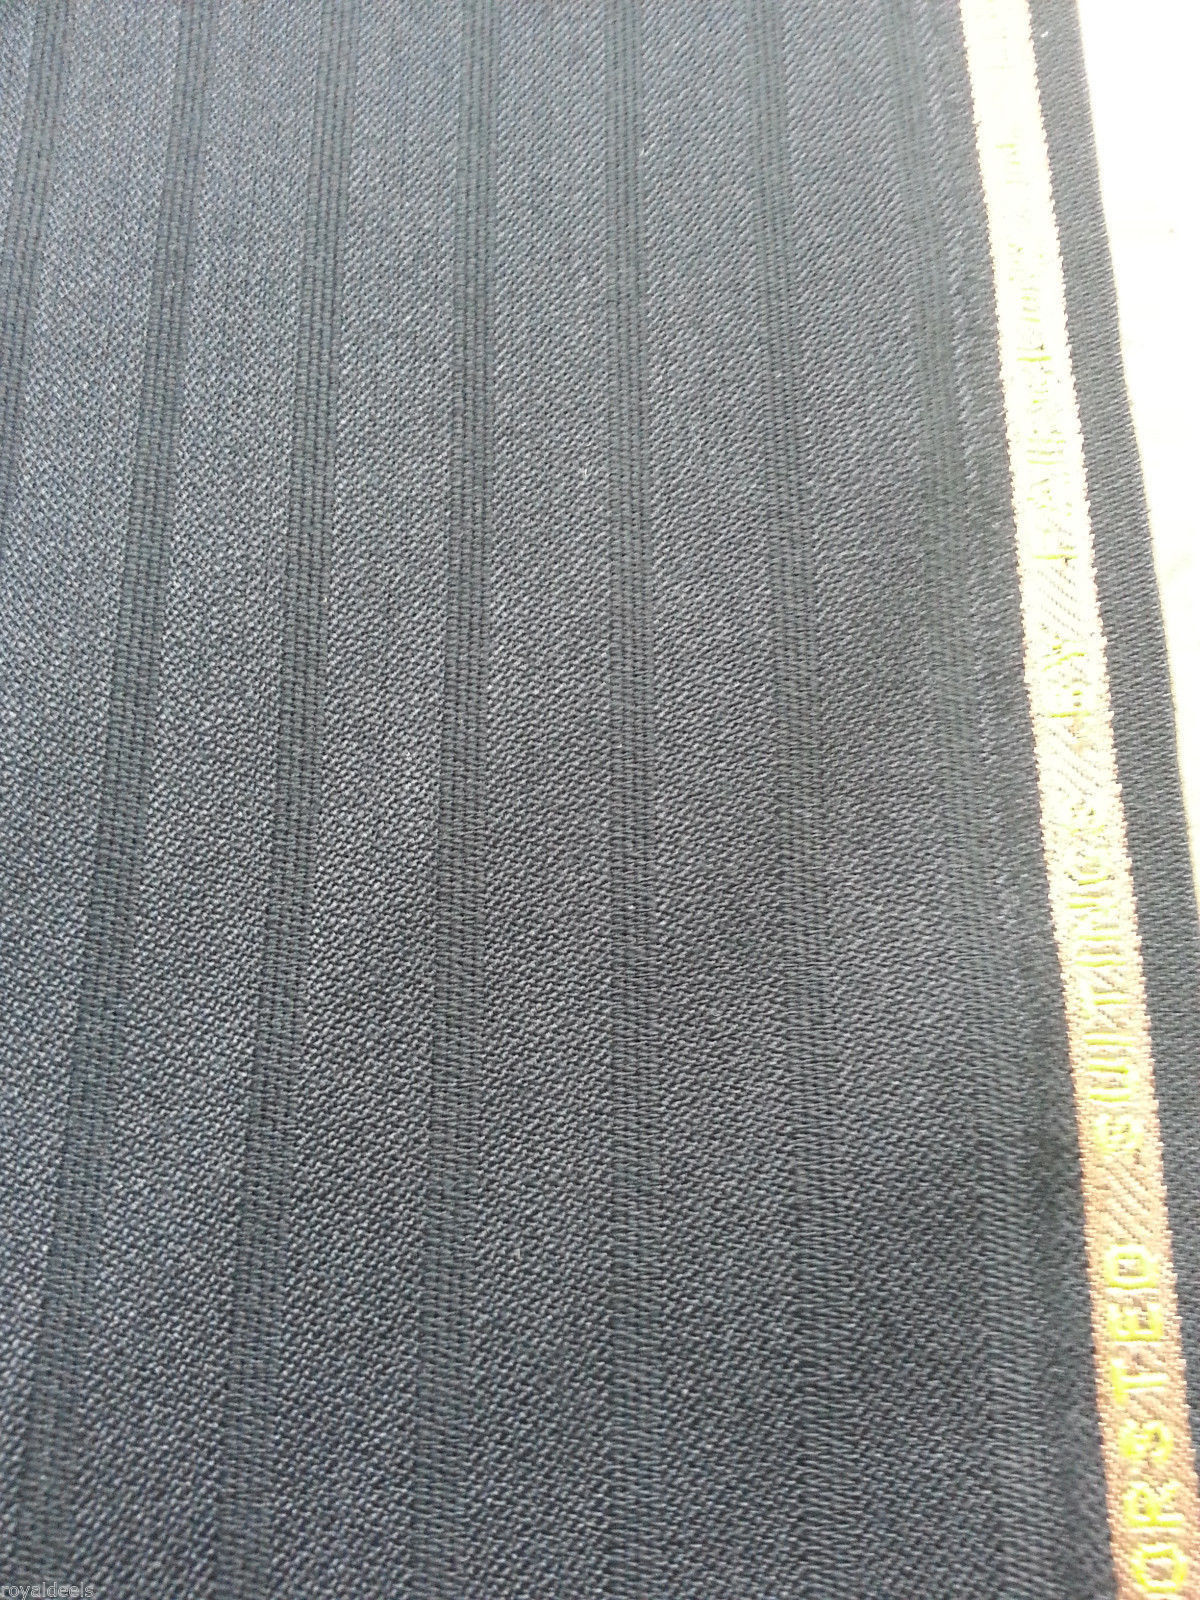 4.5 Yard Super 120s Wool Black Worsted Suit Fabric By Fairglow msrp 695